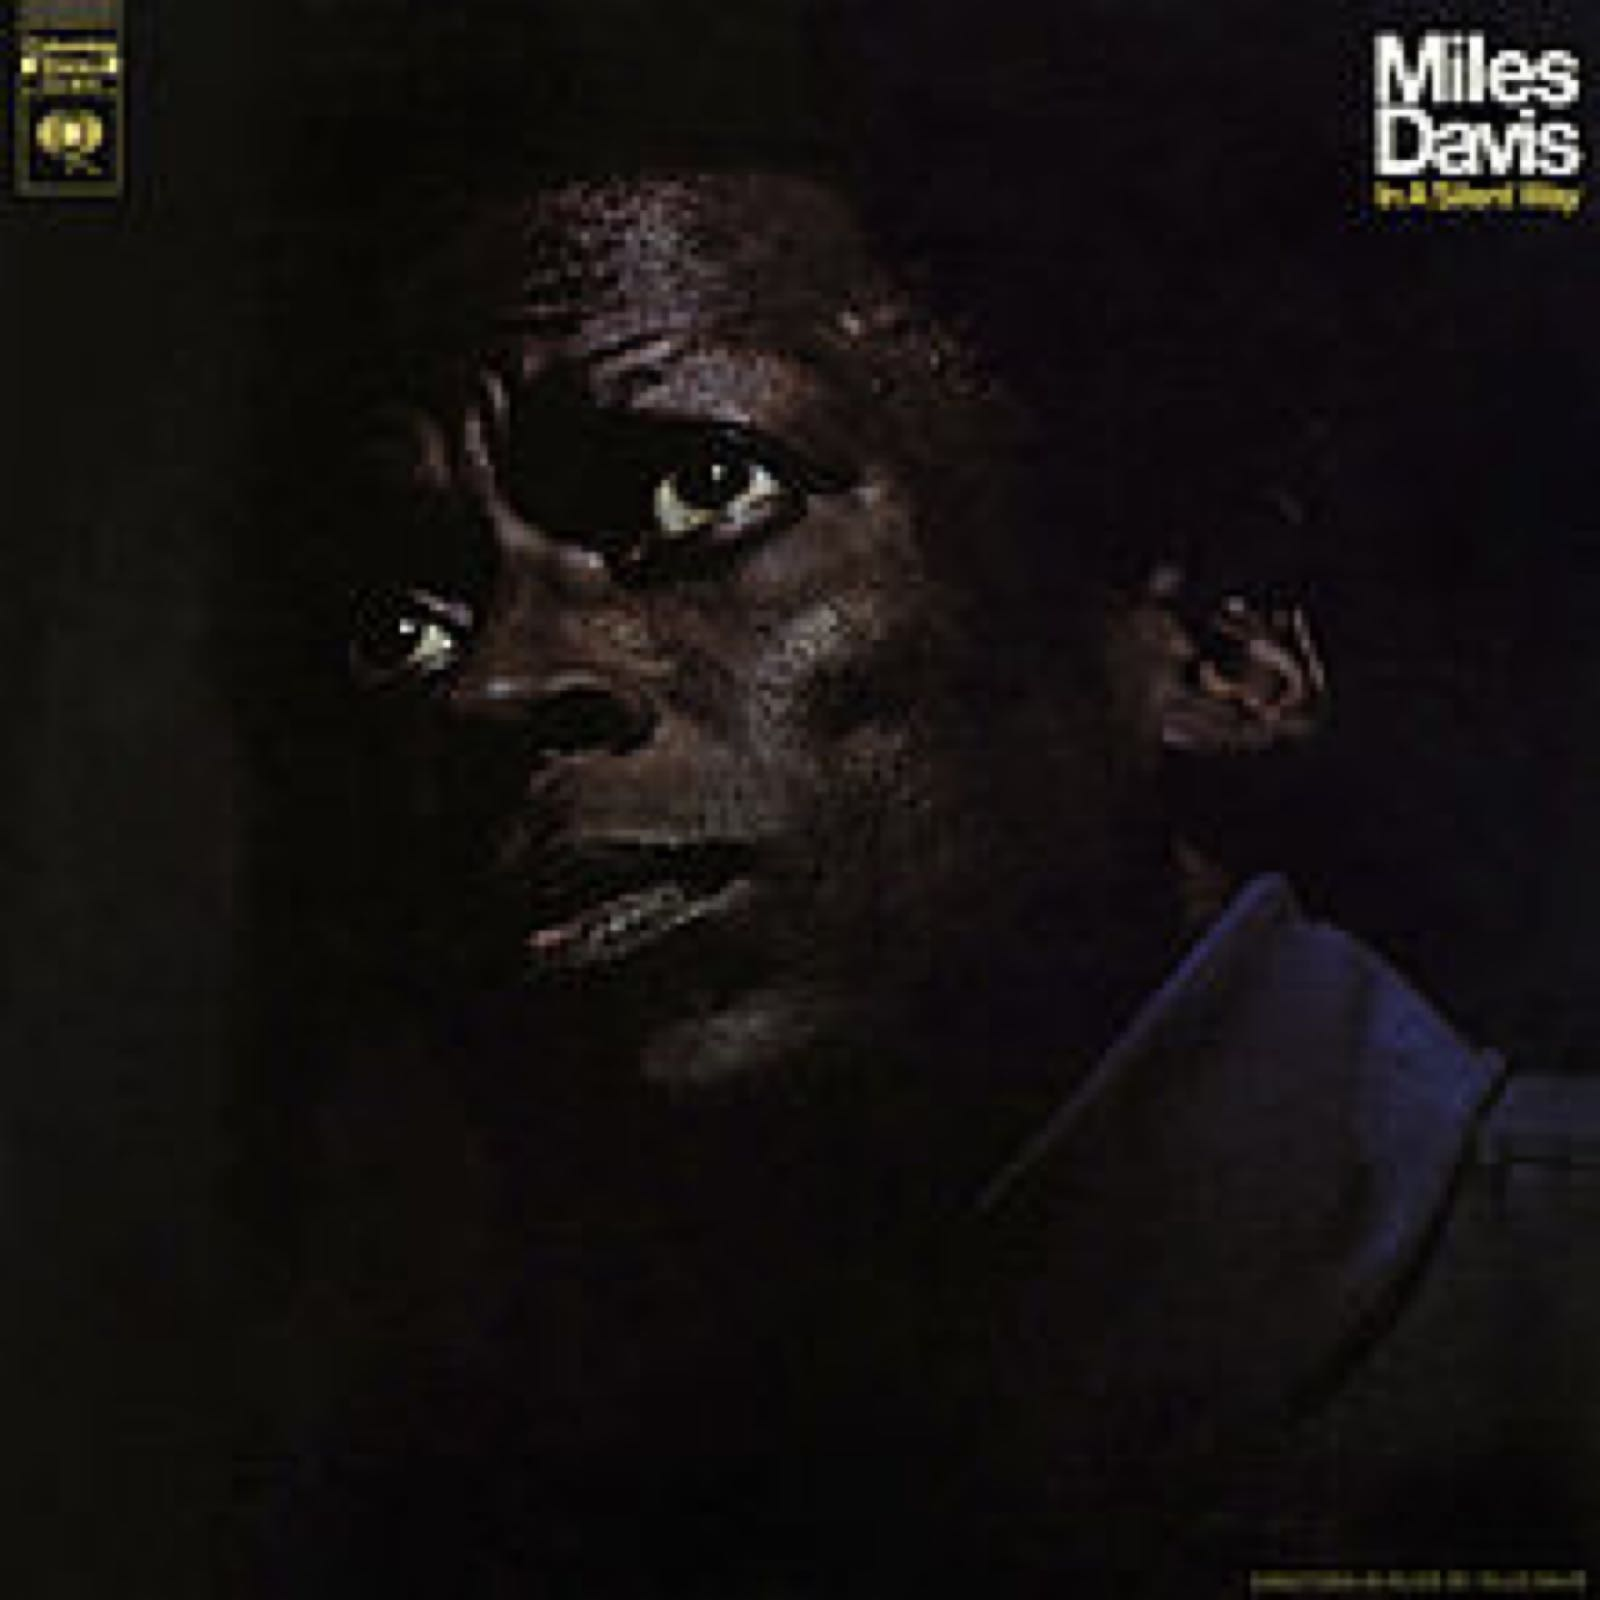 Miles Davis - In A Silent Way [LP]